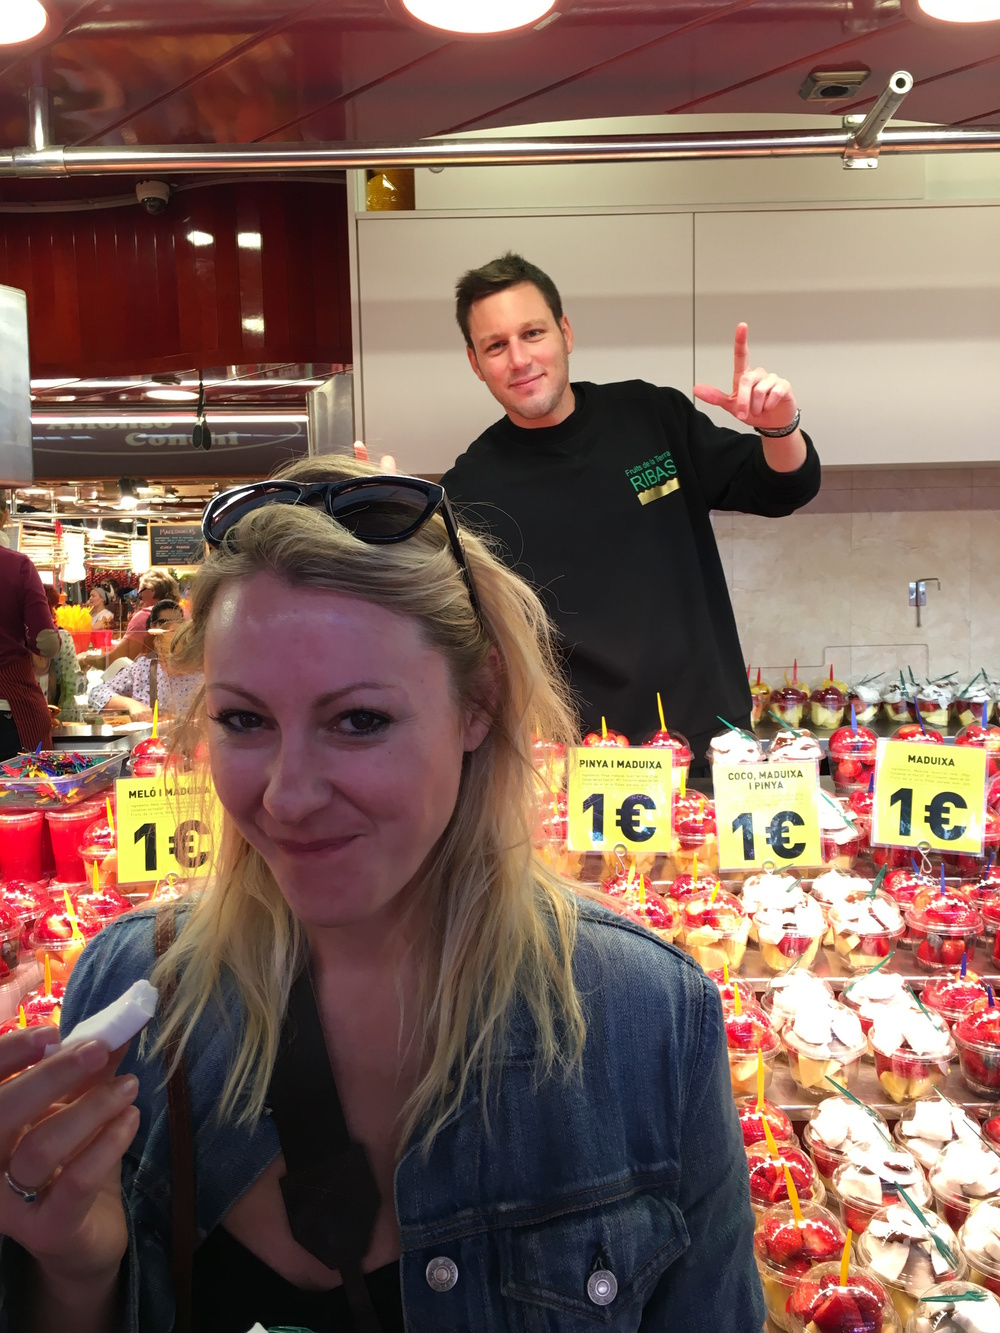 Erin's market stall photo-bomber. Captured by Krystal